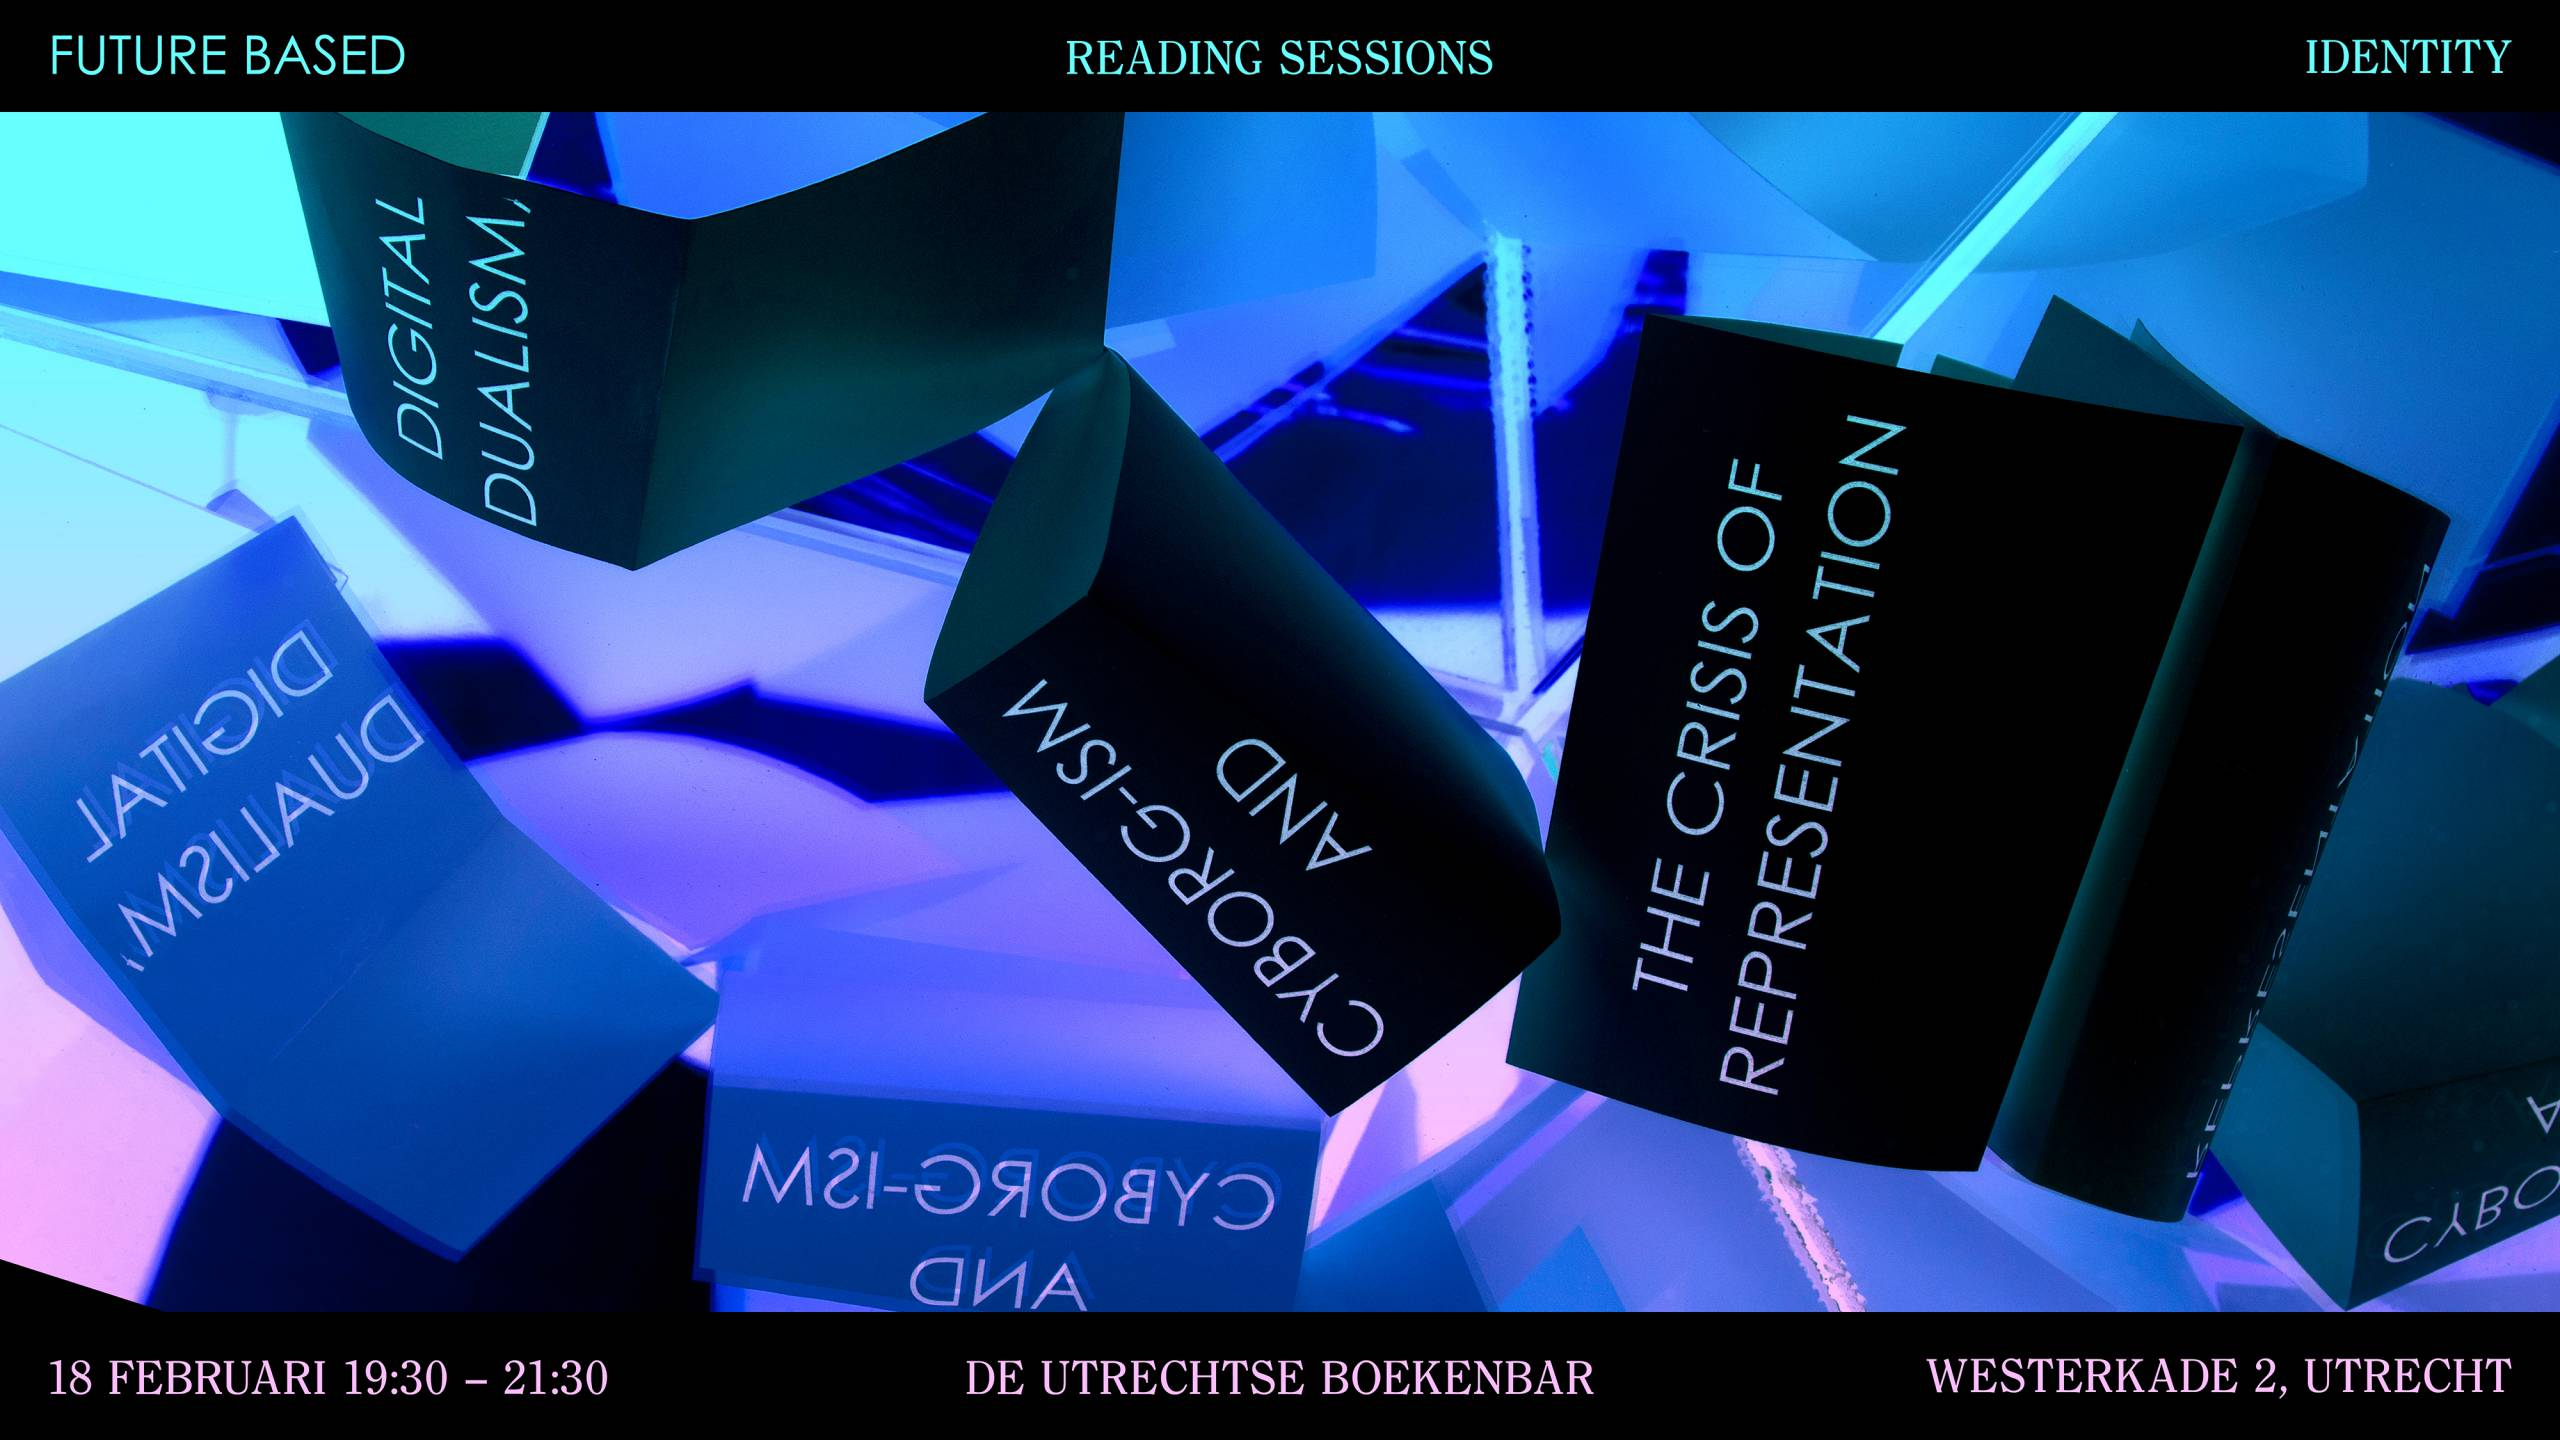 Readin Session on Cyborgism. Banner by Dana Dijkgraaf